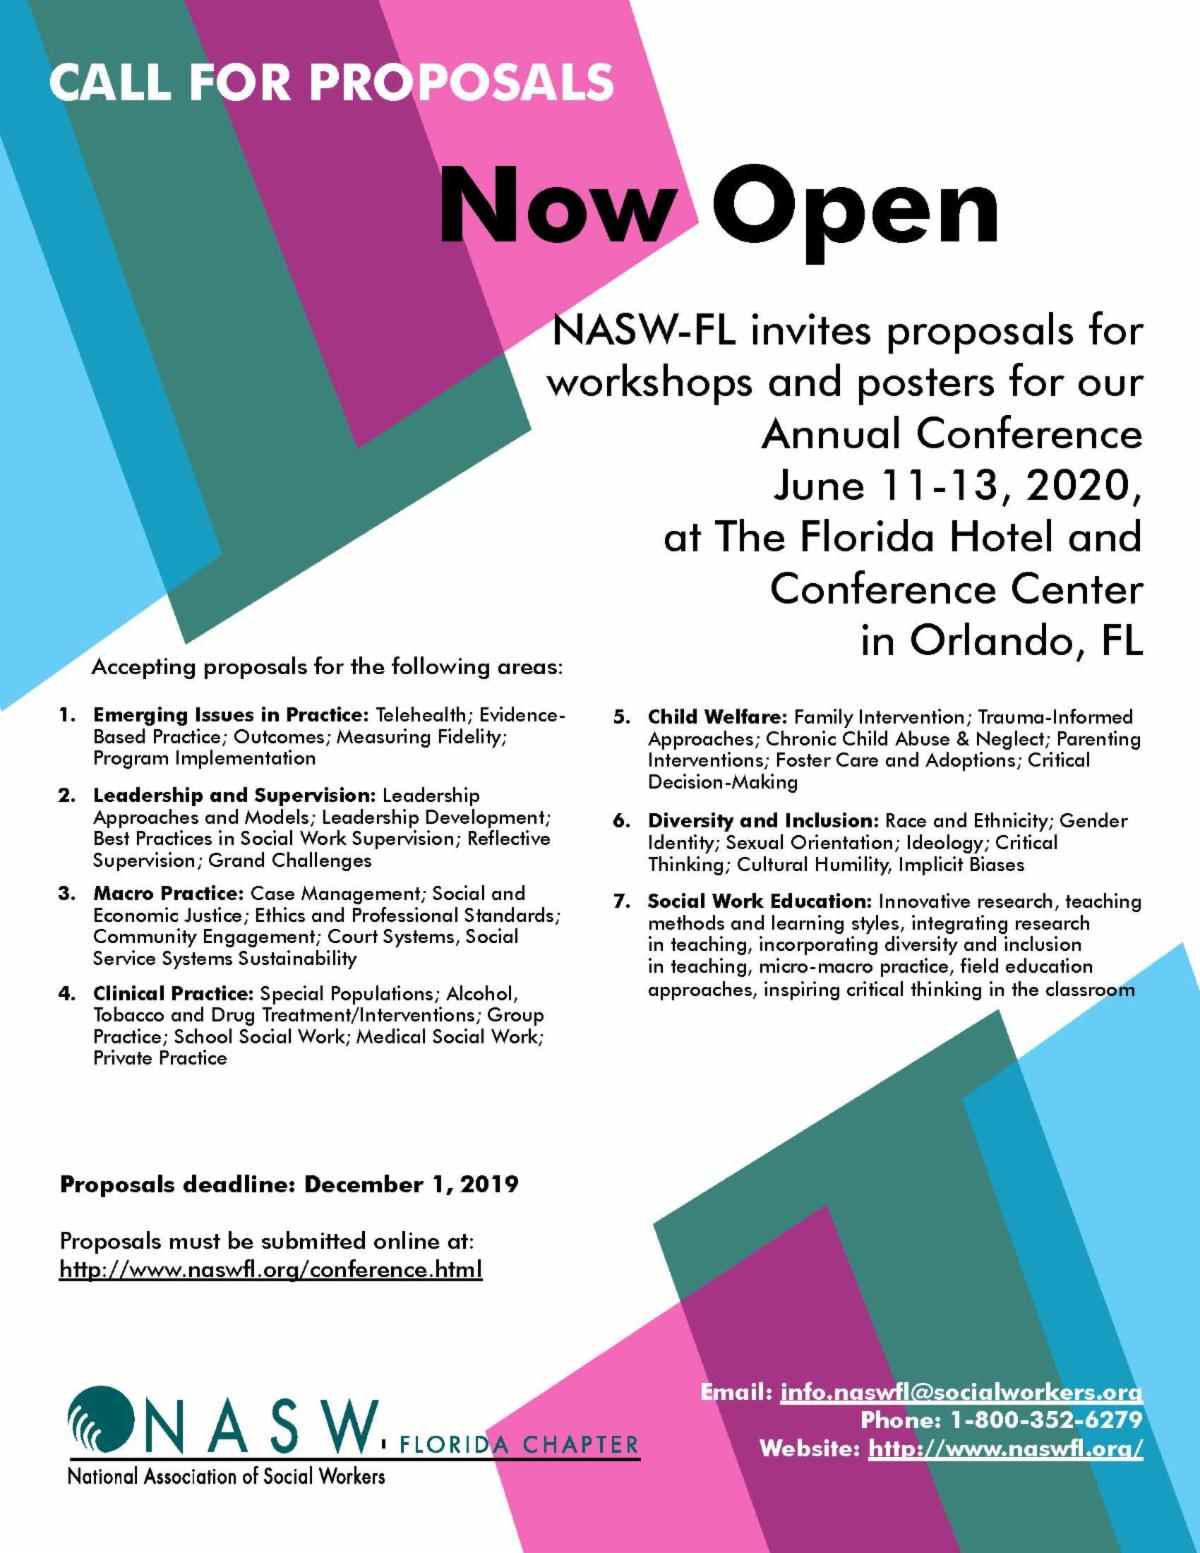 2020 Annual Conference Call for Proposals